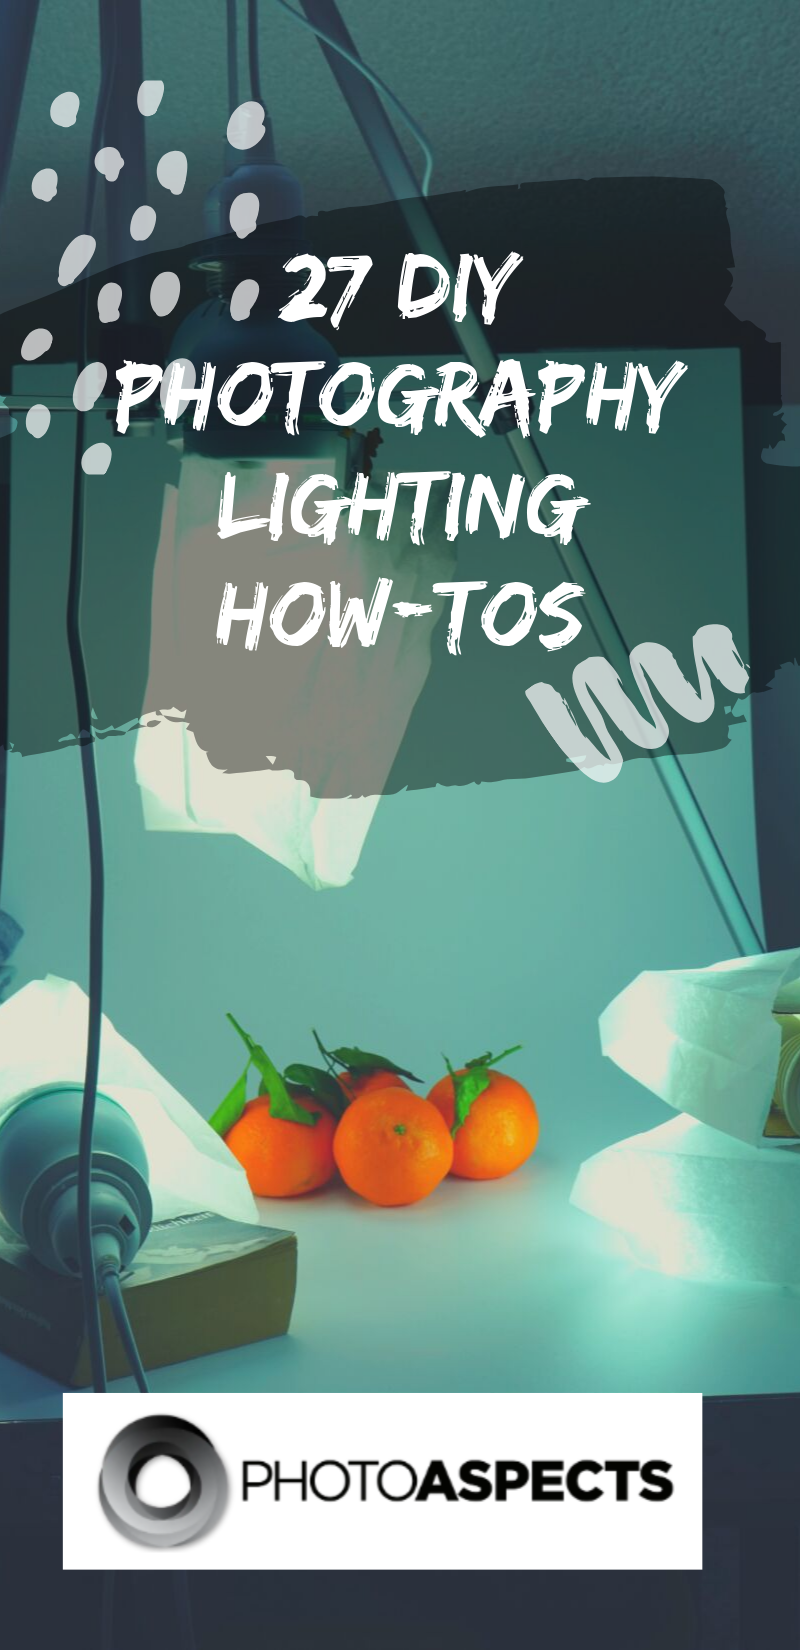 Photo of 27 DIY Photography Lighting How-Tos Photograp